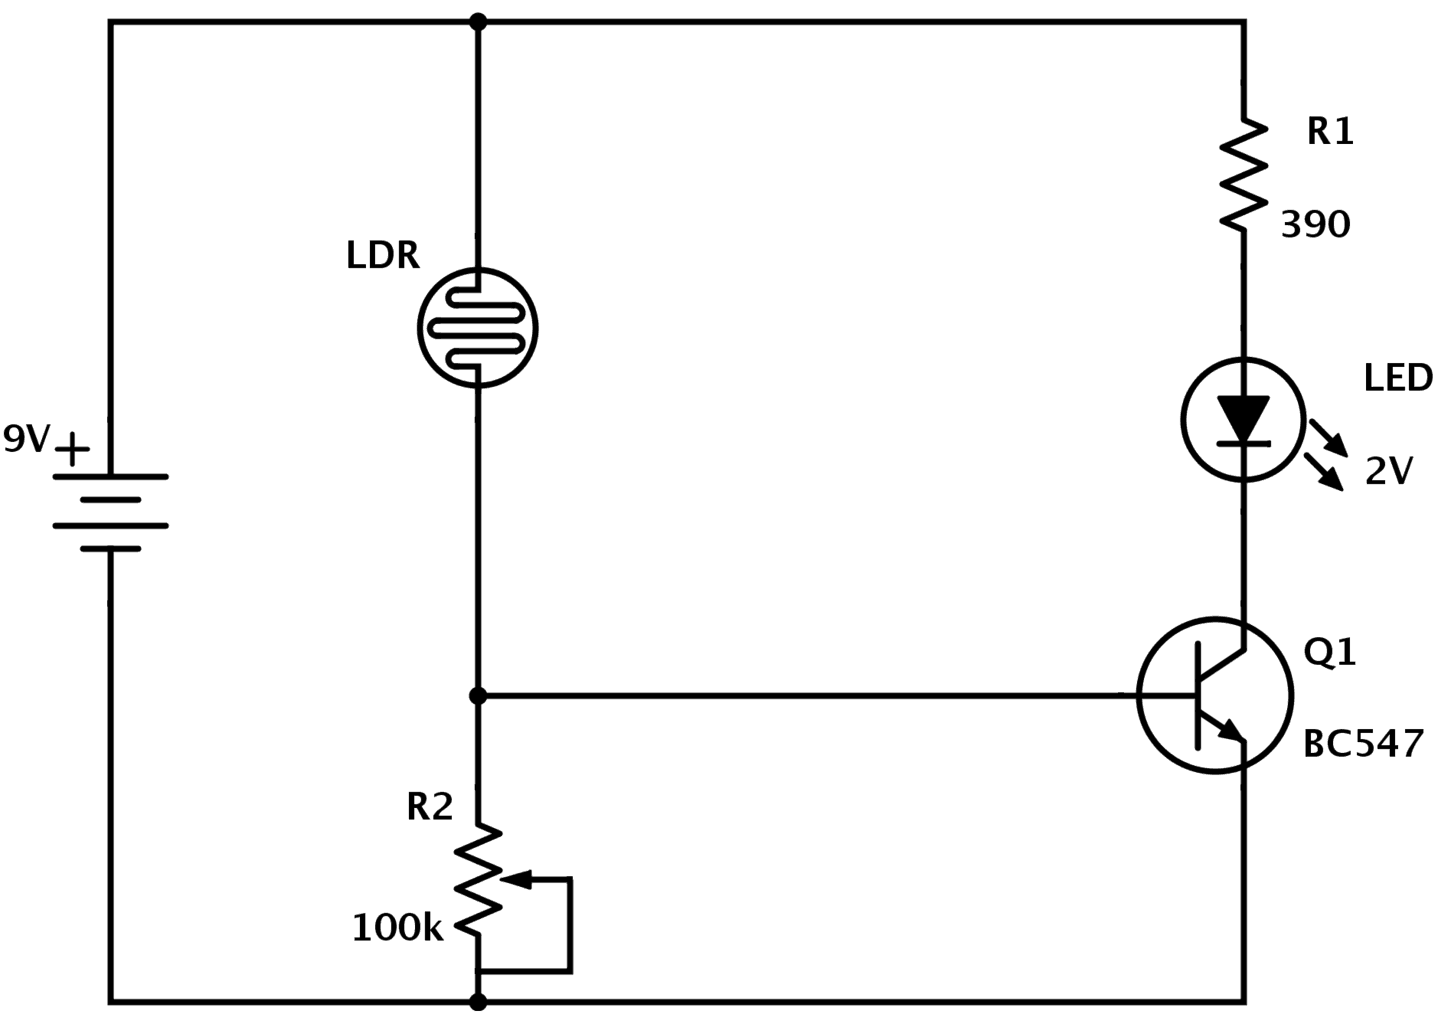 how to read a wiring diagram symbols wire dimmer switch circuit and understand any schematic ldr